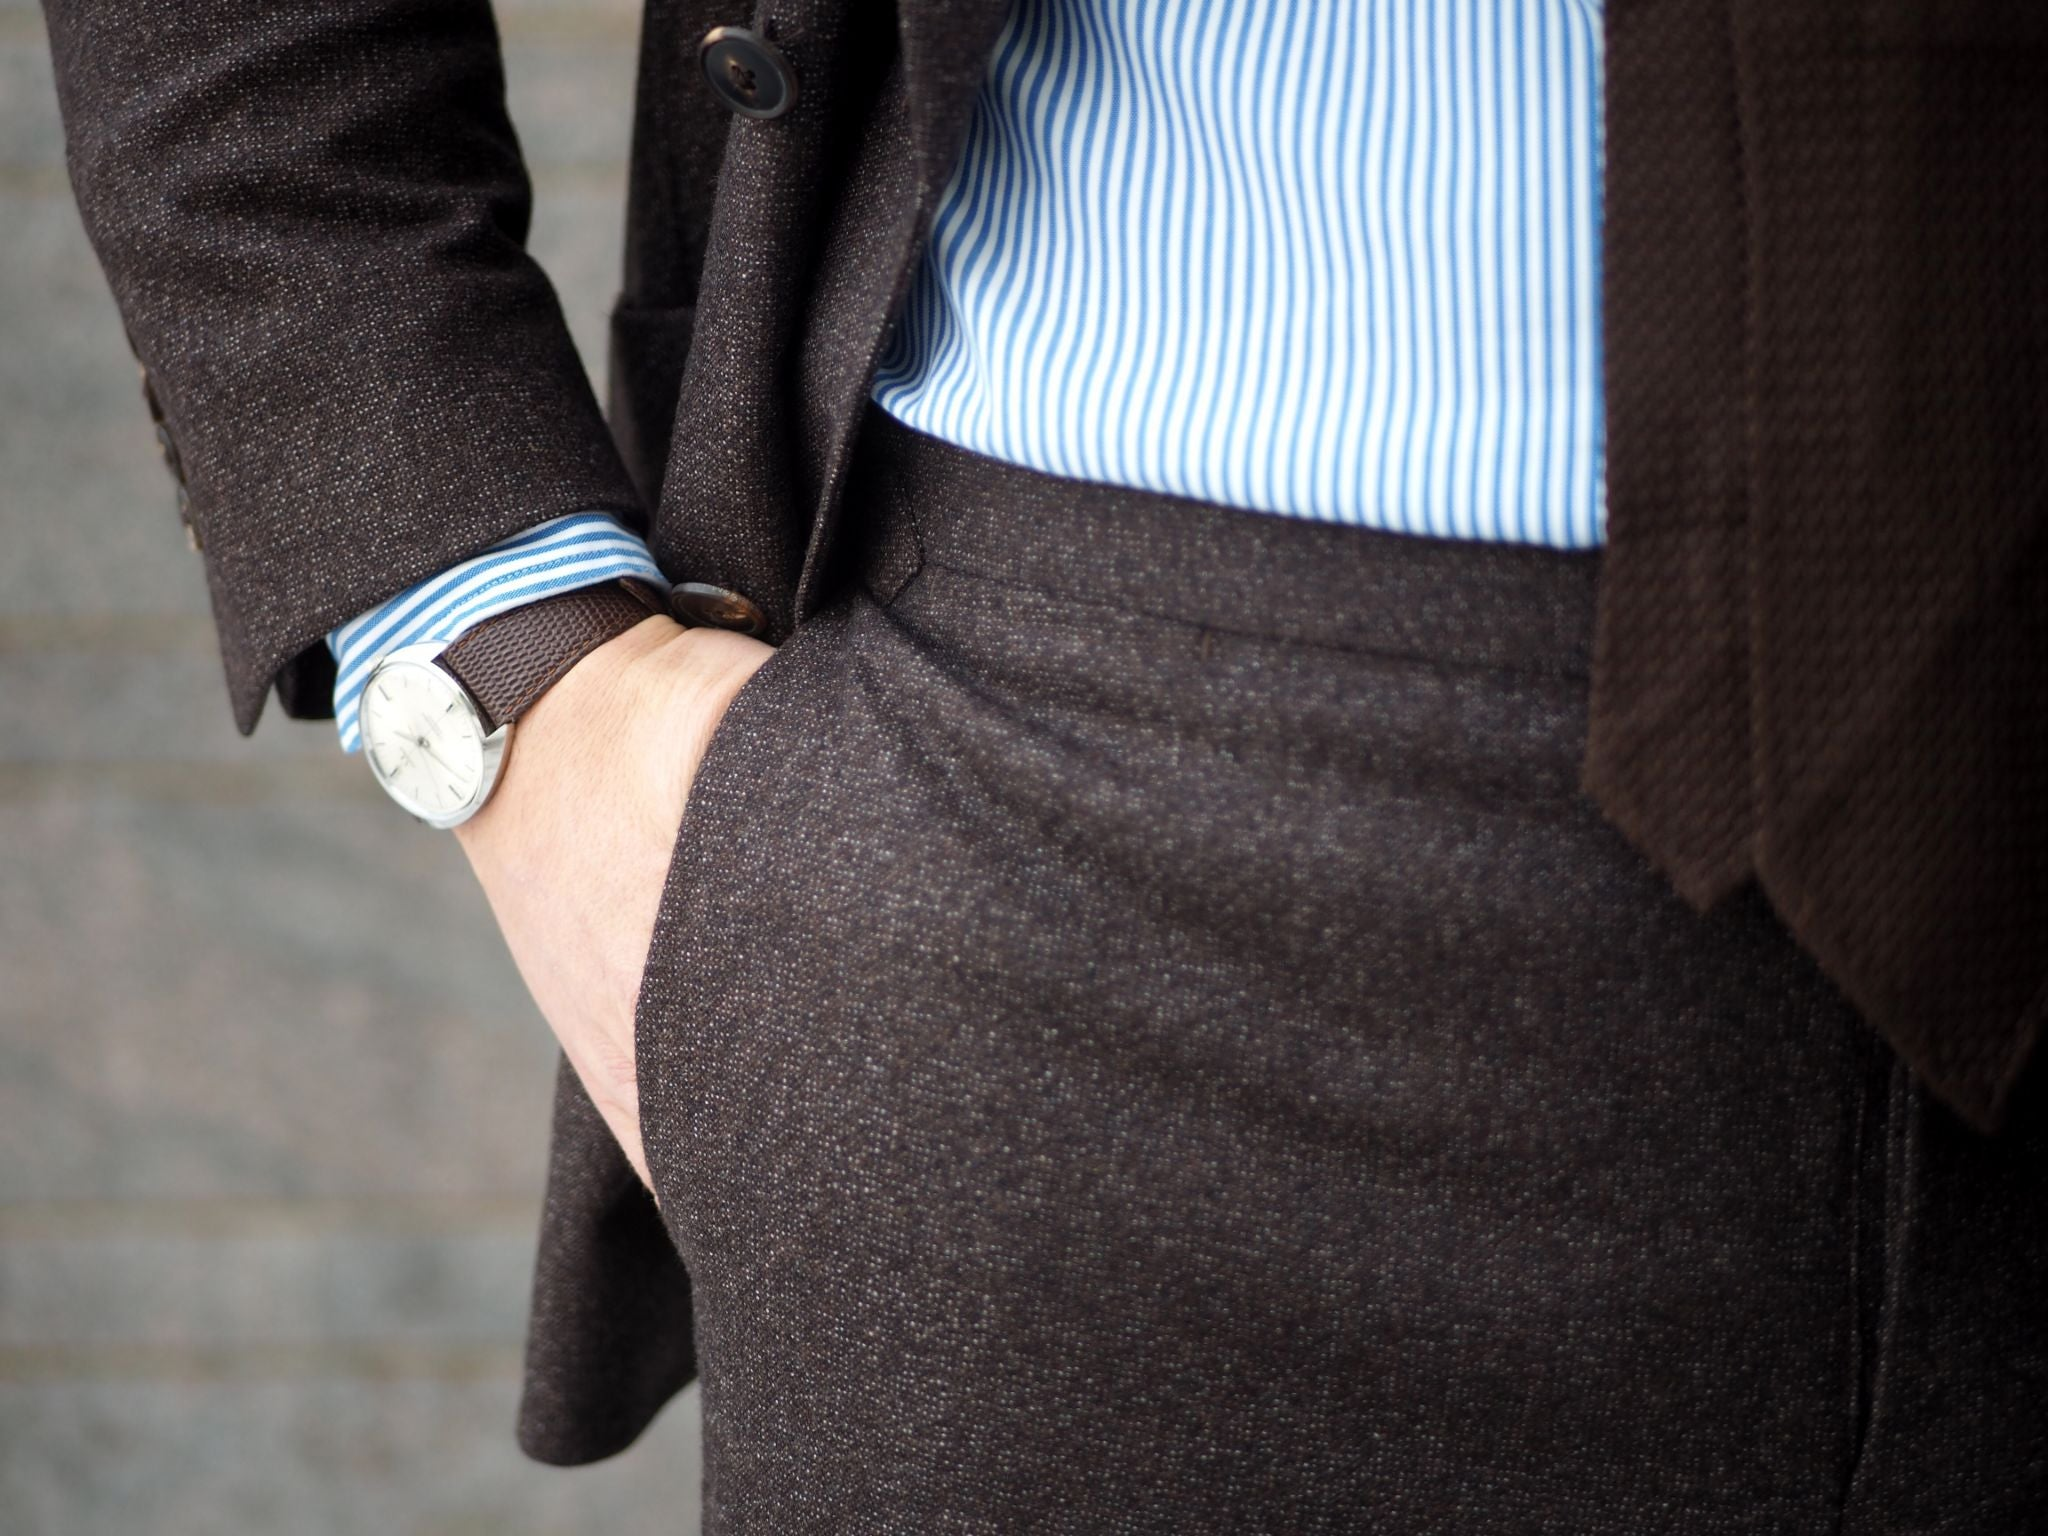 Details - brown leather watch strap to match the outfit colors and brown suit.